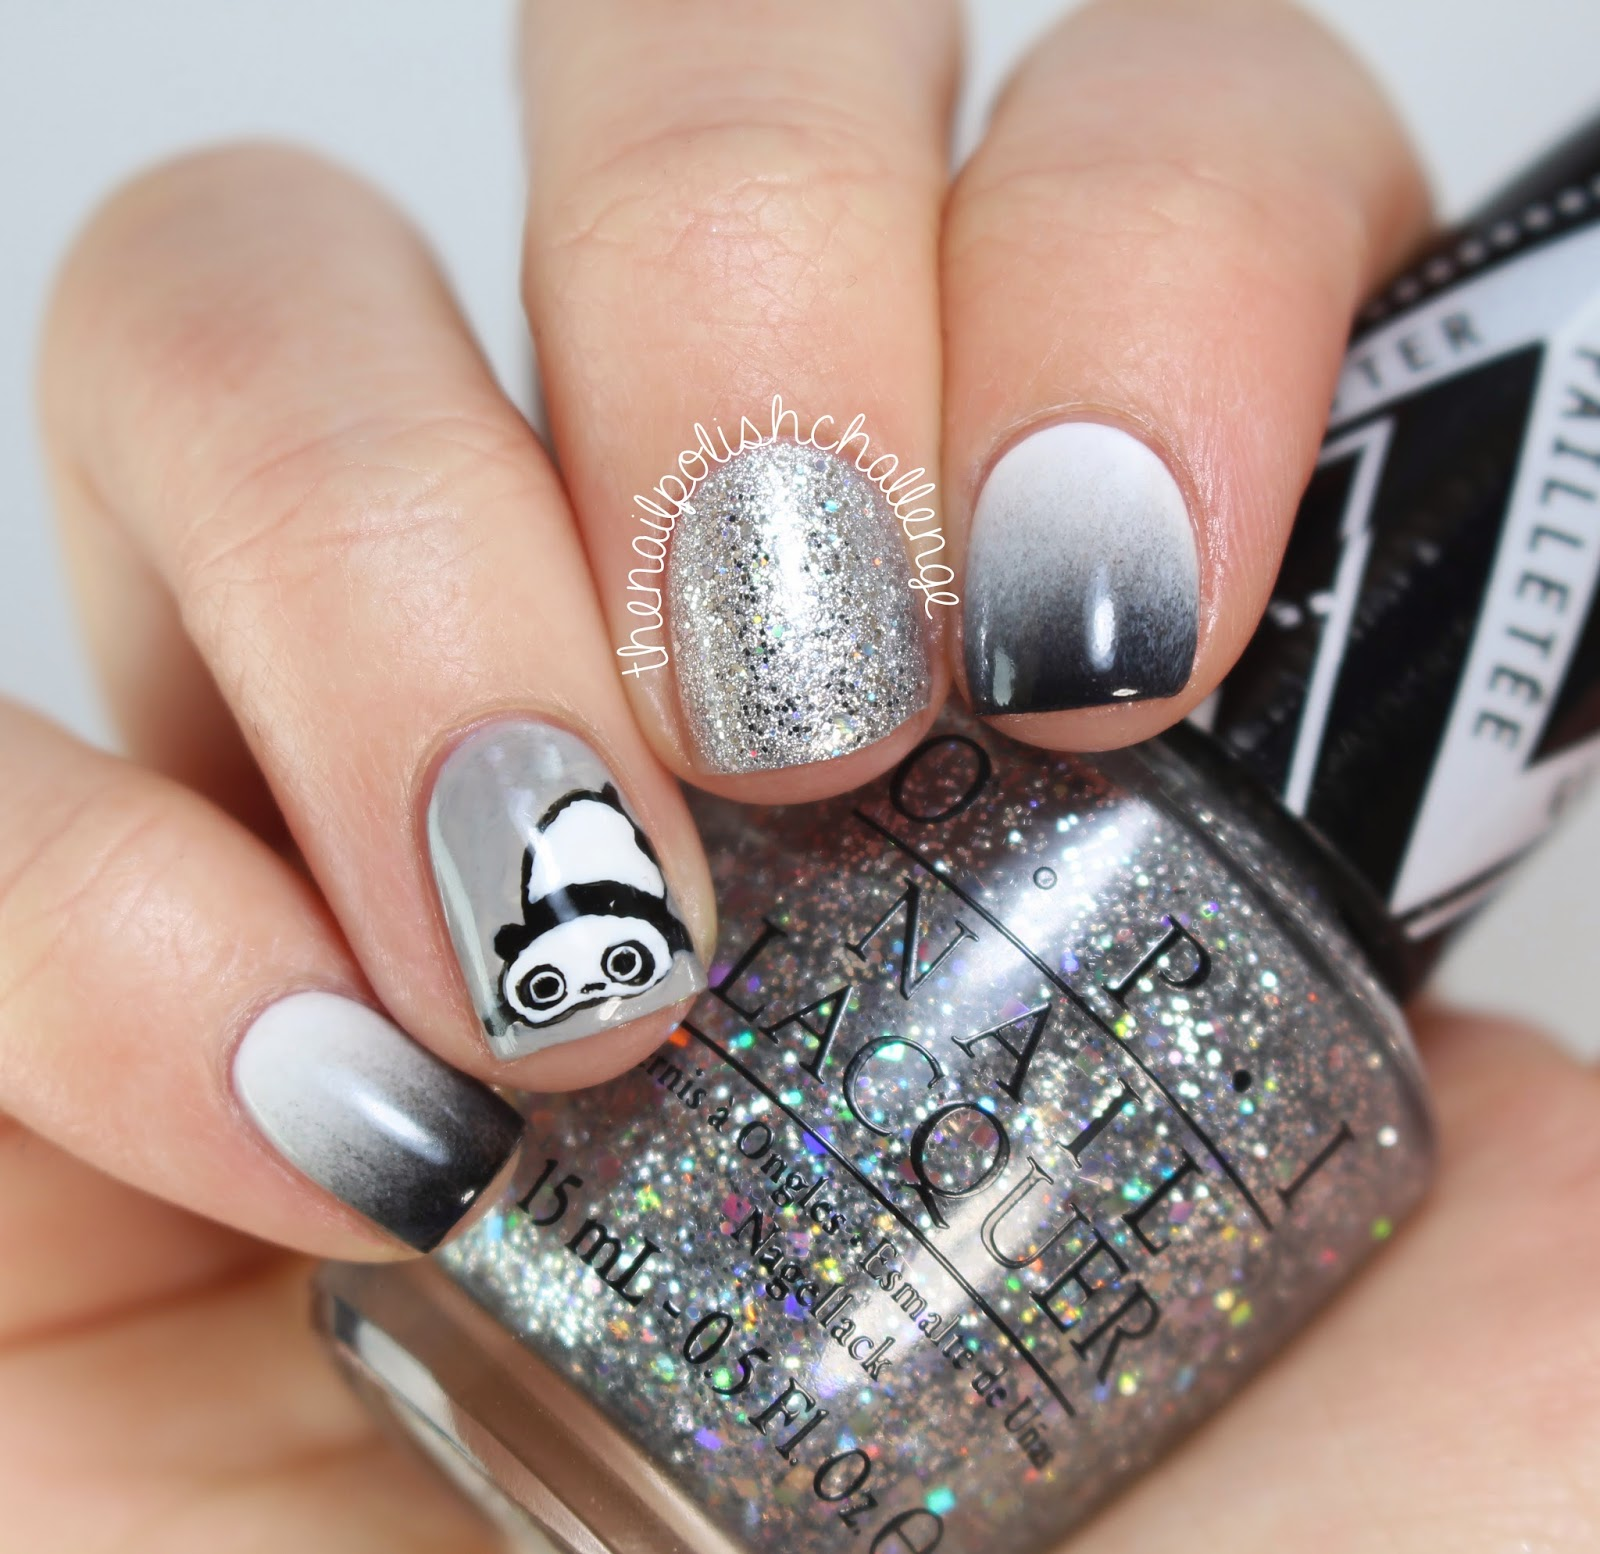 Kelli marissa grayscale panda nail art so we all know im not great at freehanding haha but i am pretty happy with how this little panda turned out i used all nail polish for this manicure prinsesfo Image collections